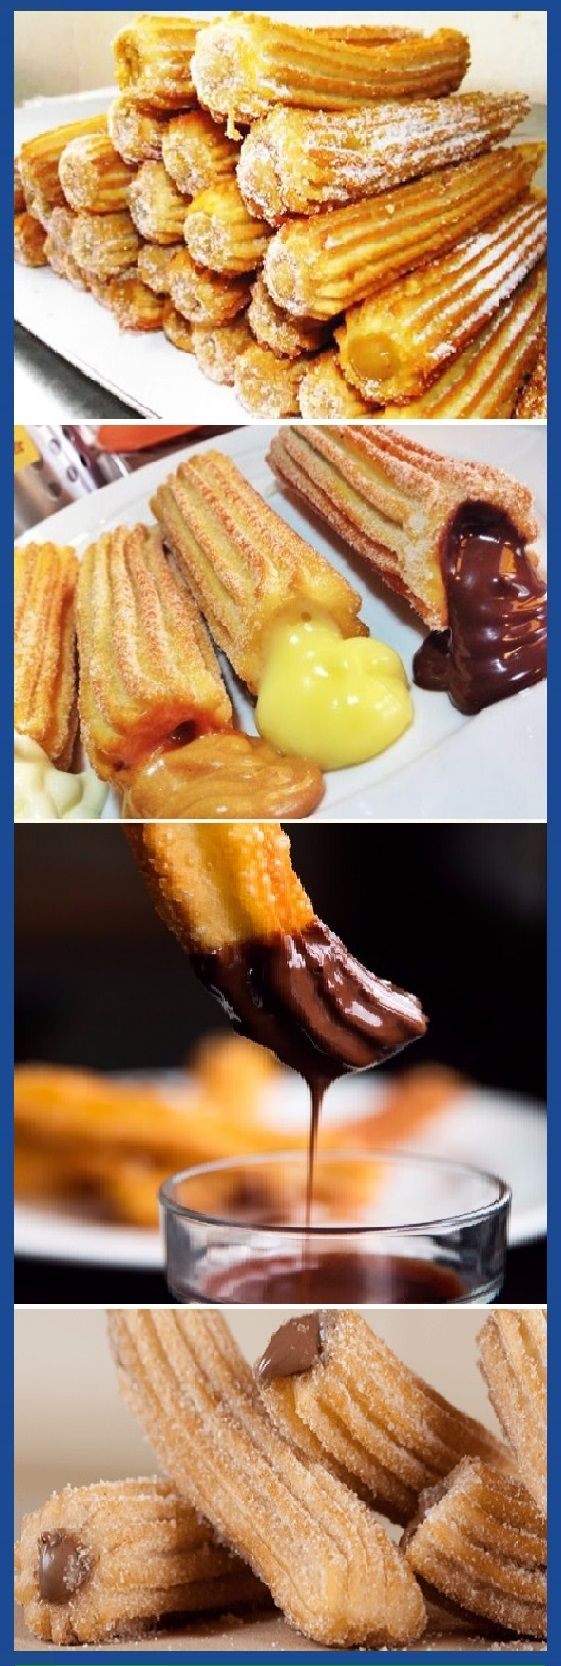 Cómo Hacer Churros Caseros Con Solo 2 Ingredientes Y En 5 Minutos Churros Facil Receta Recipe Caser Sweet Recipes Delicious Desserts Dessert Ingredients